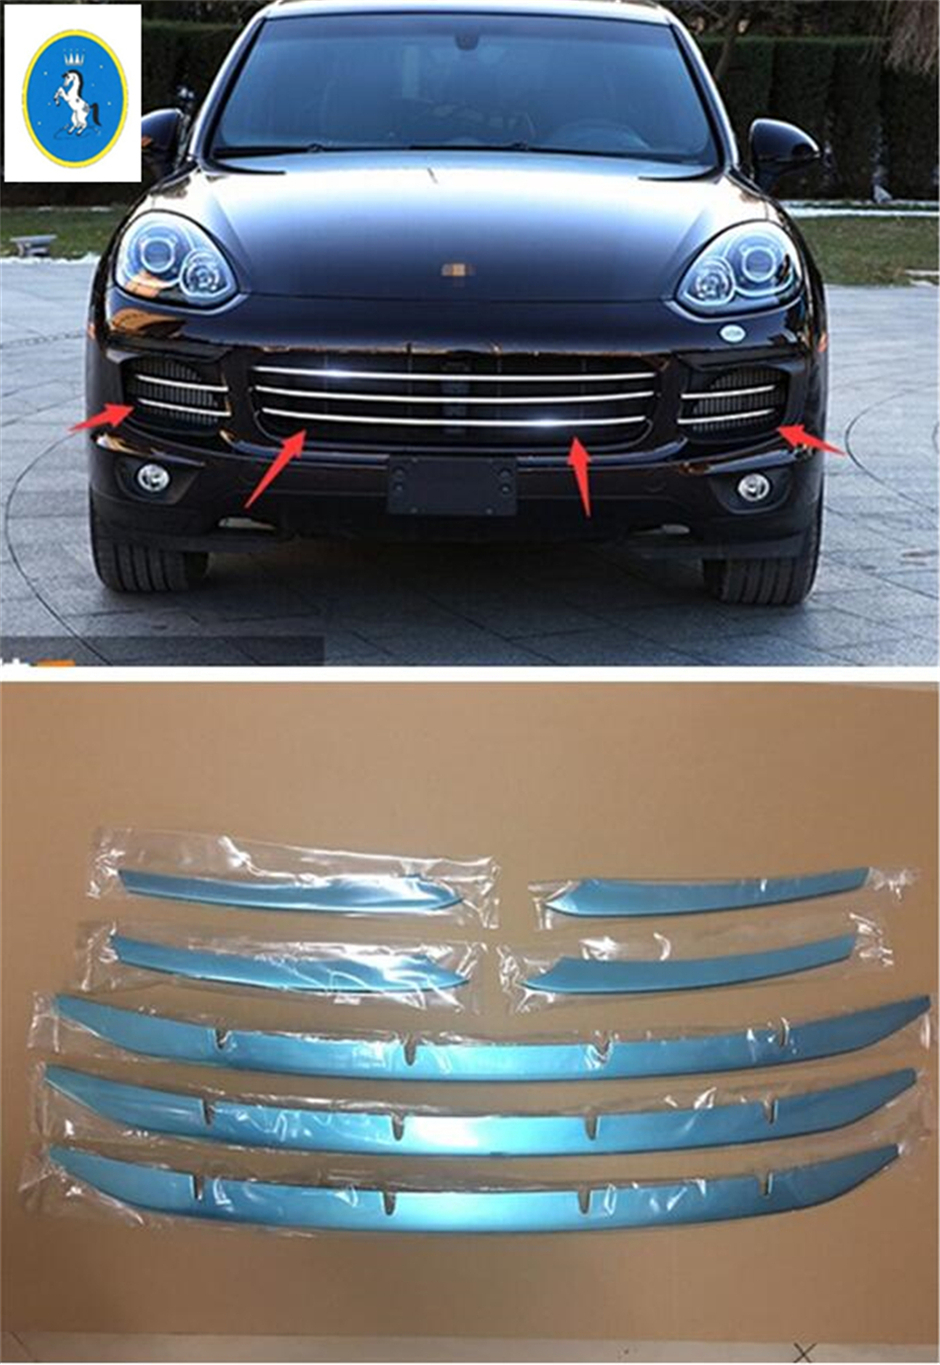 More Fashion ! For Porsche Cayenne 2015 2016 Front Middle Face Center Grills Grill Cover Trim Molding Garnish 7 Pcs / Set accessories for porsche cayenne 2015 2016 front head center grille grill lid decoration molding cover kit trim 7 pcs